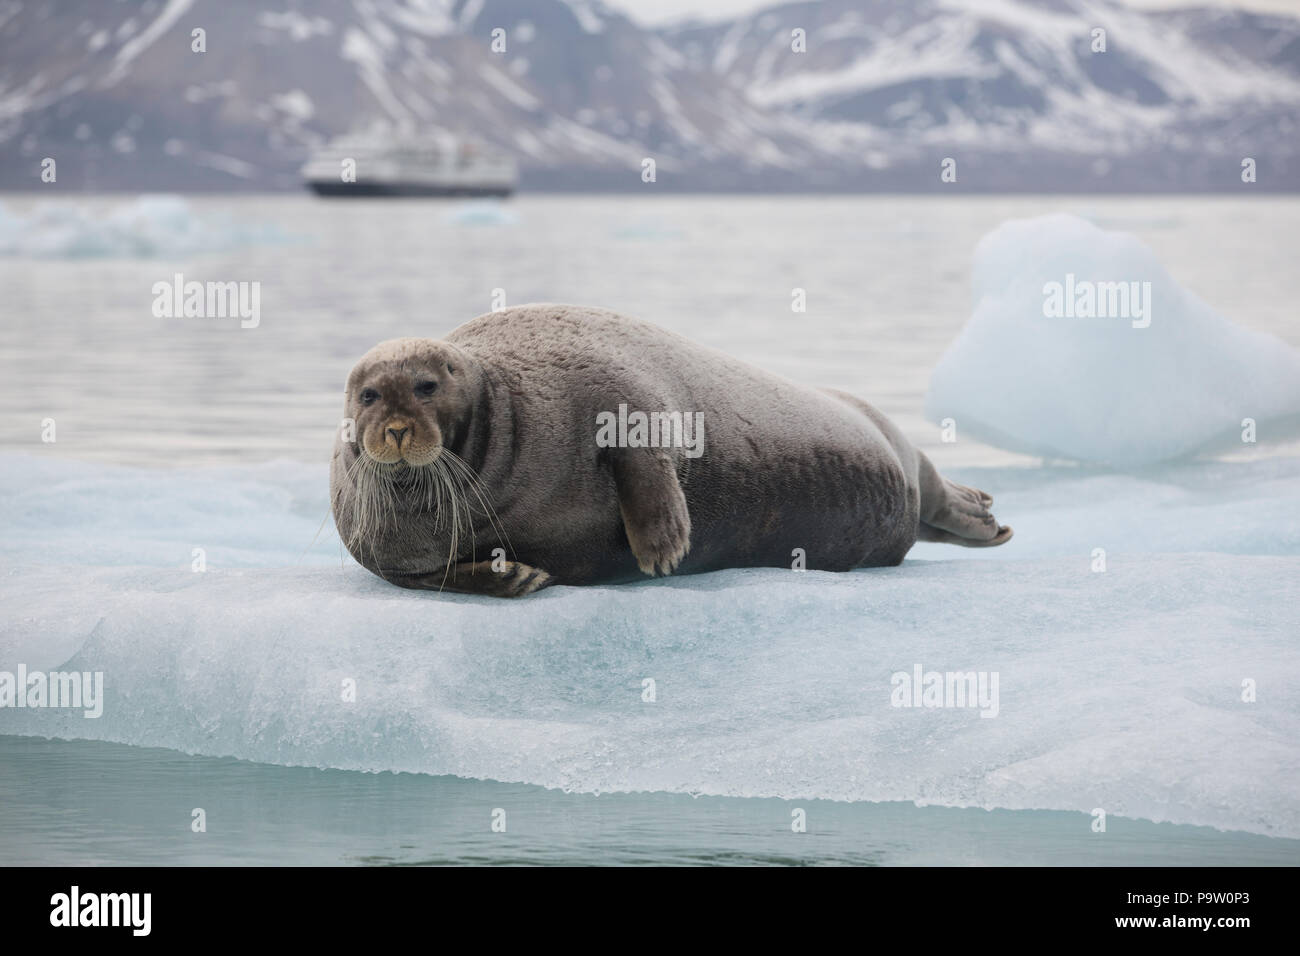 Bearded Seal (Erignathus barbatus) on an ice floe in Svalbard with an expedition cruise ship in the background - Stock Image